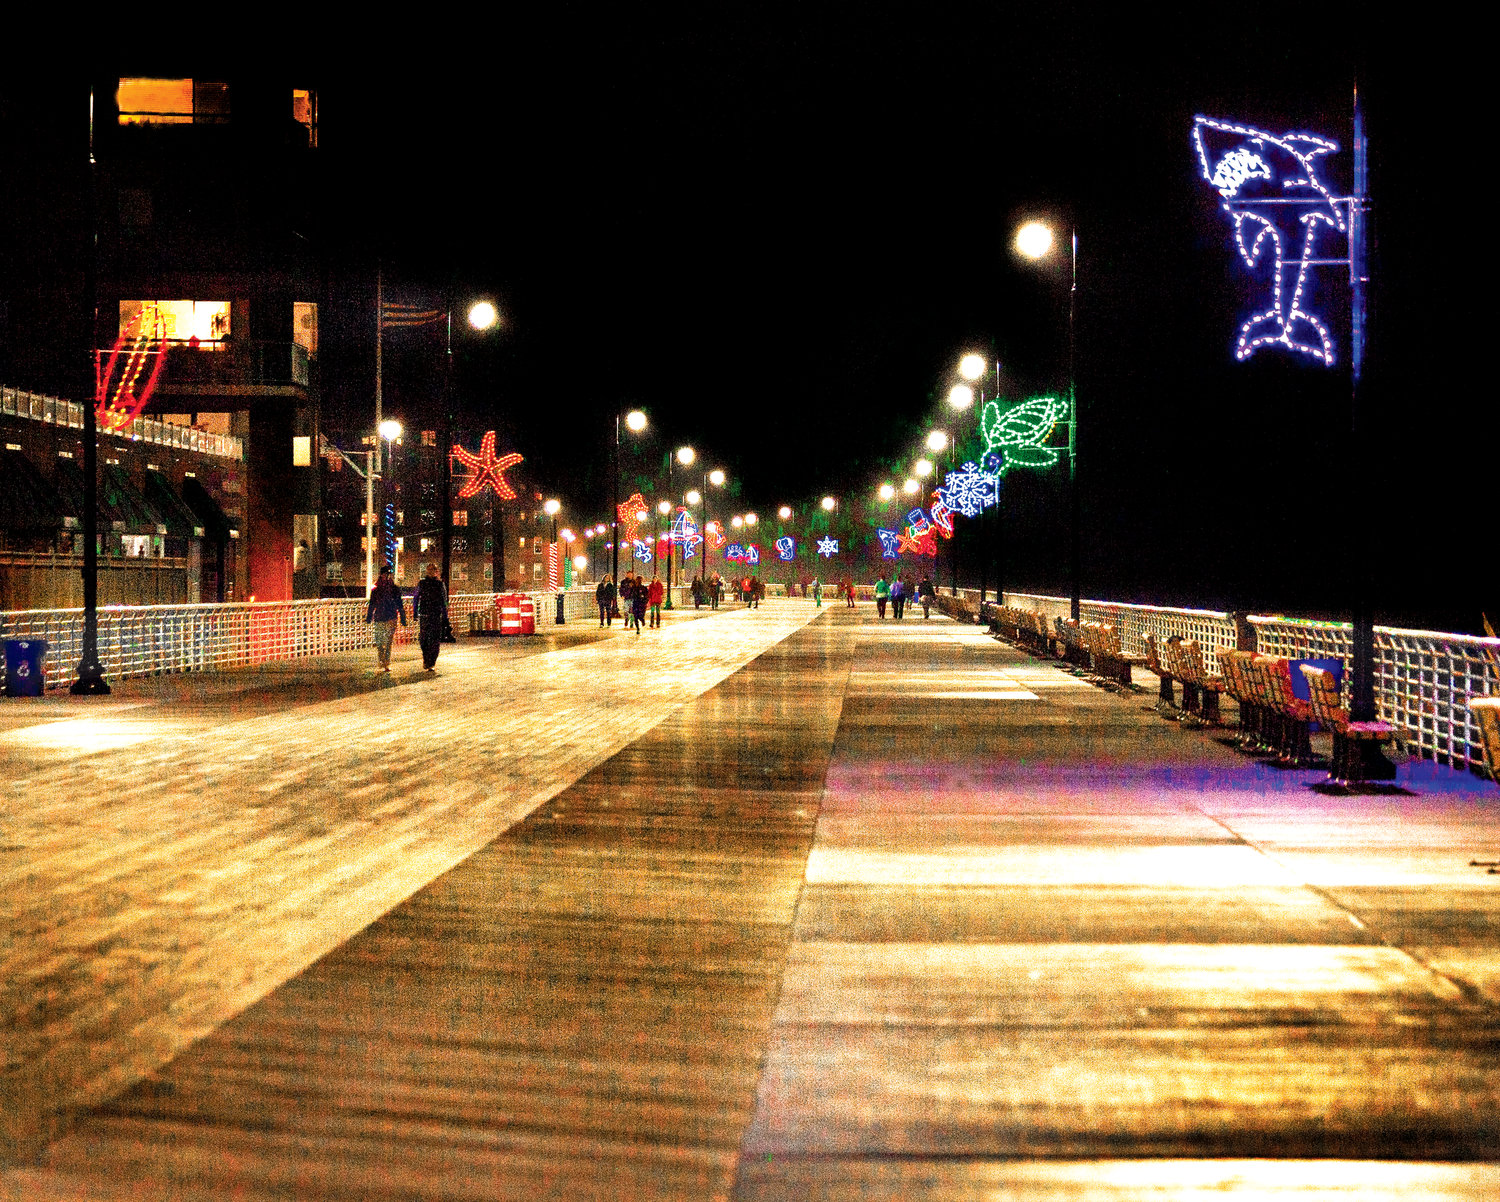 The city placed nautical-themed holiday lights along the boardwalk in 2013 as part of an economic development initiative after Sandy.